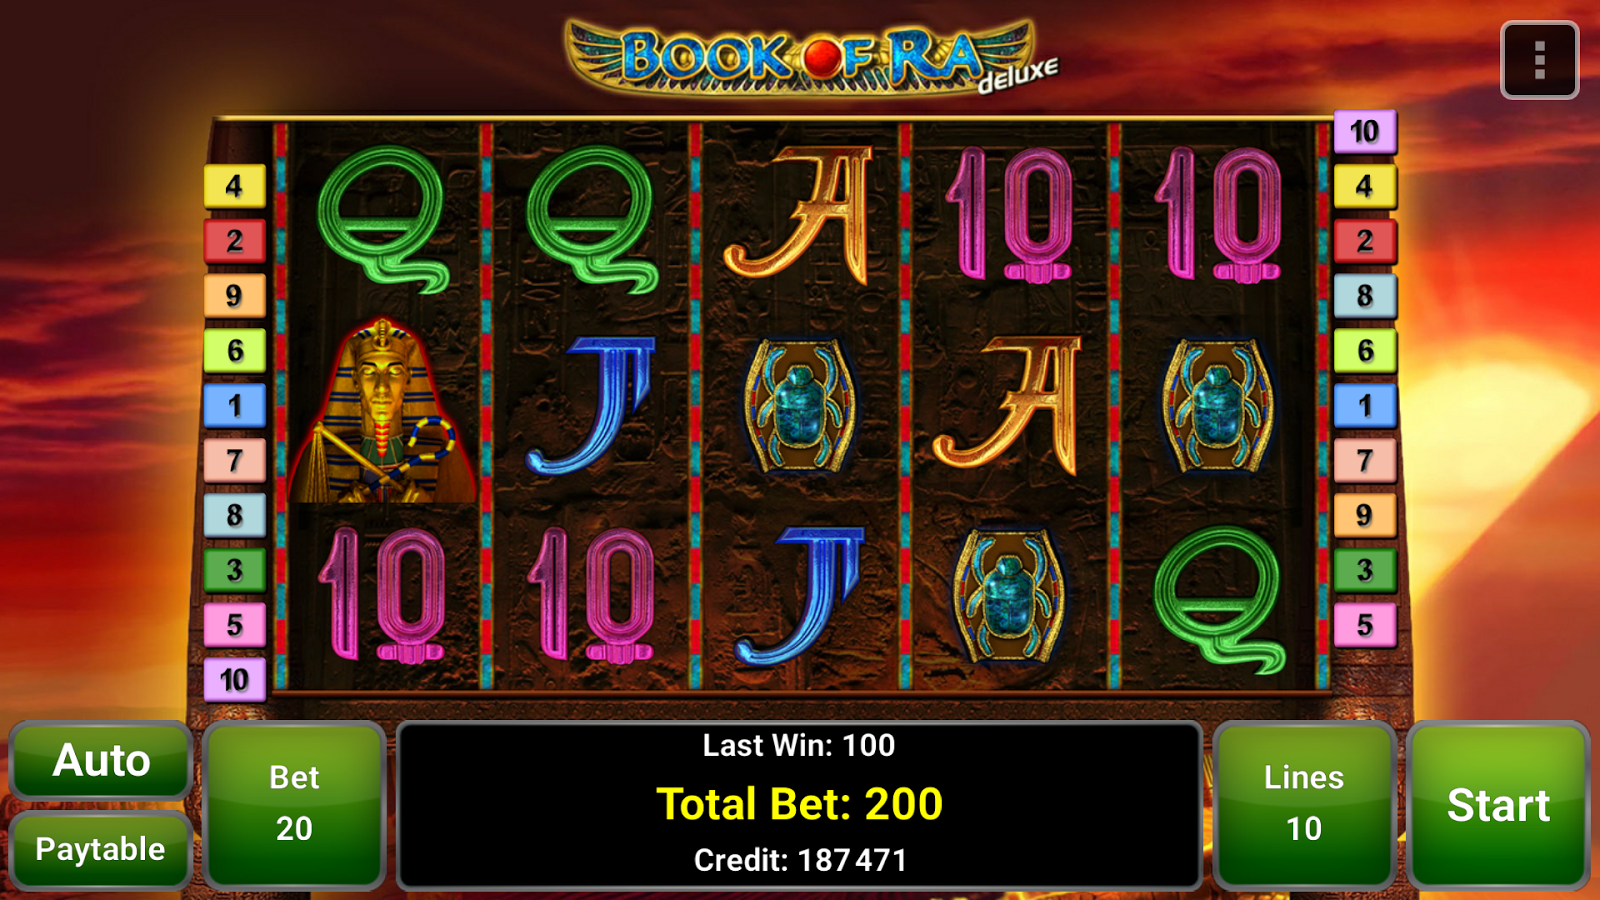 online casino slots book of ra deluxe download kostenlos